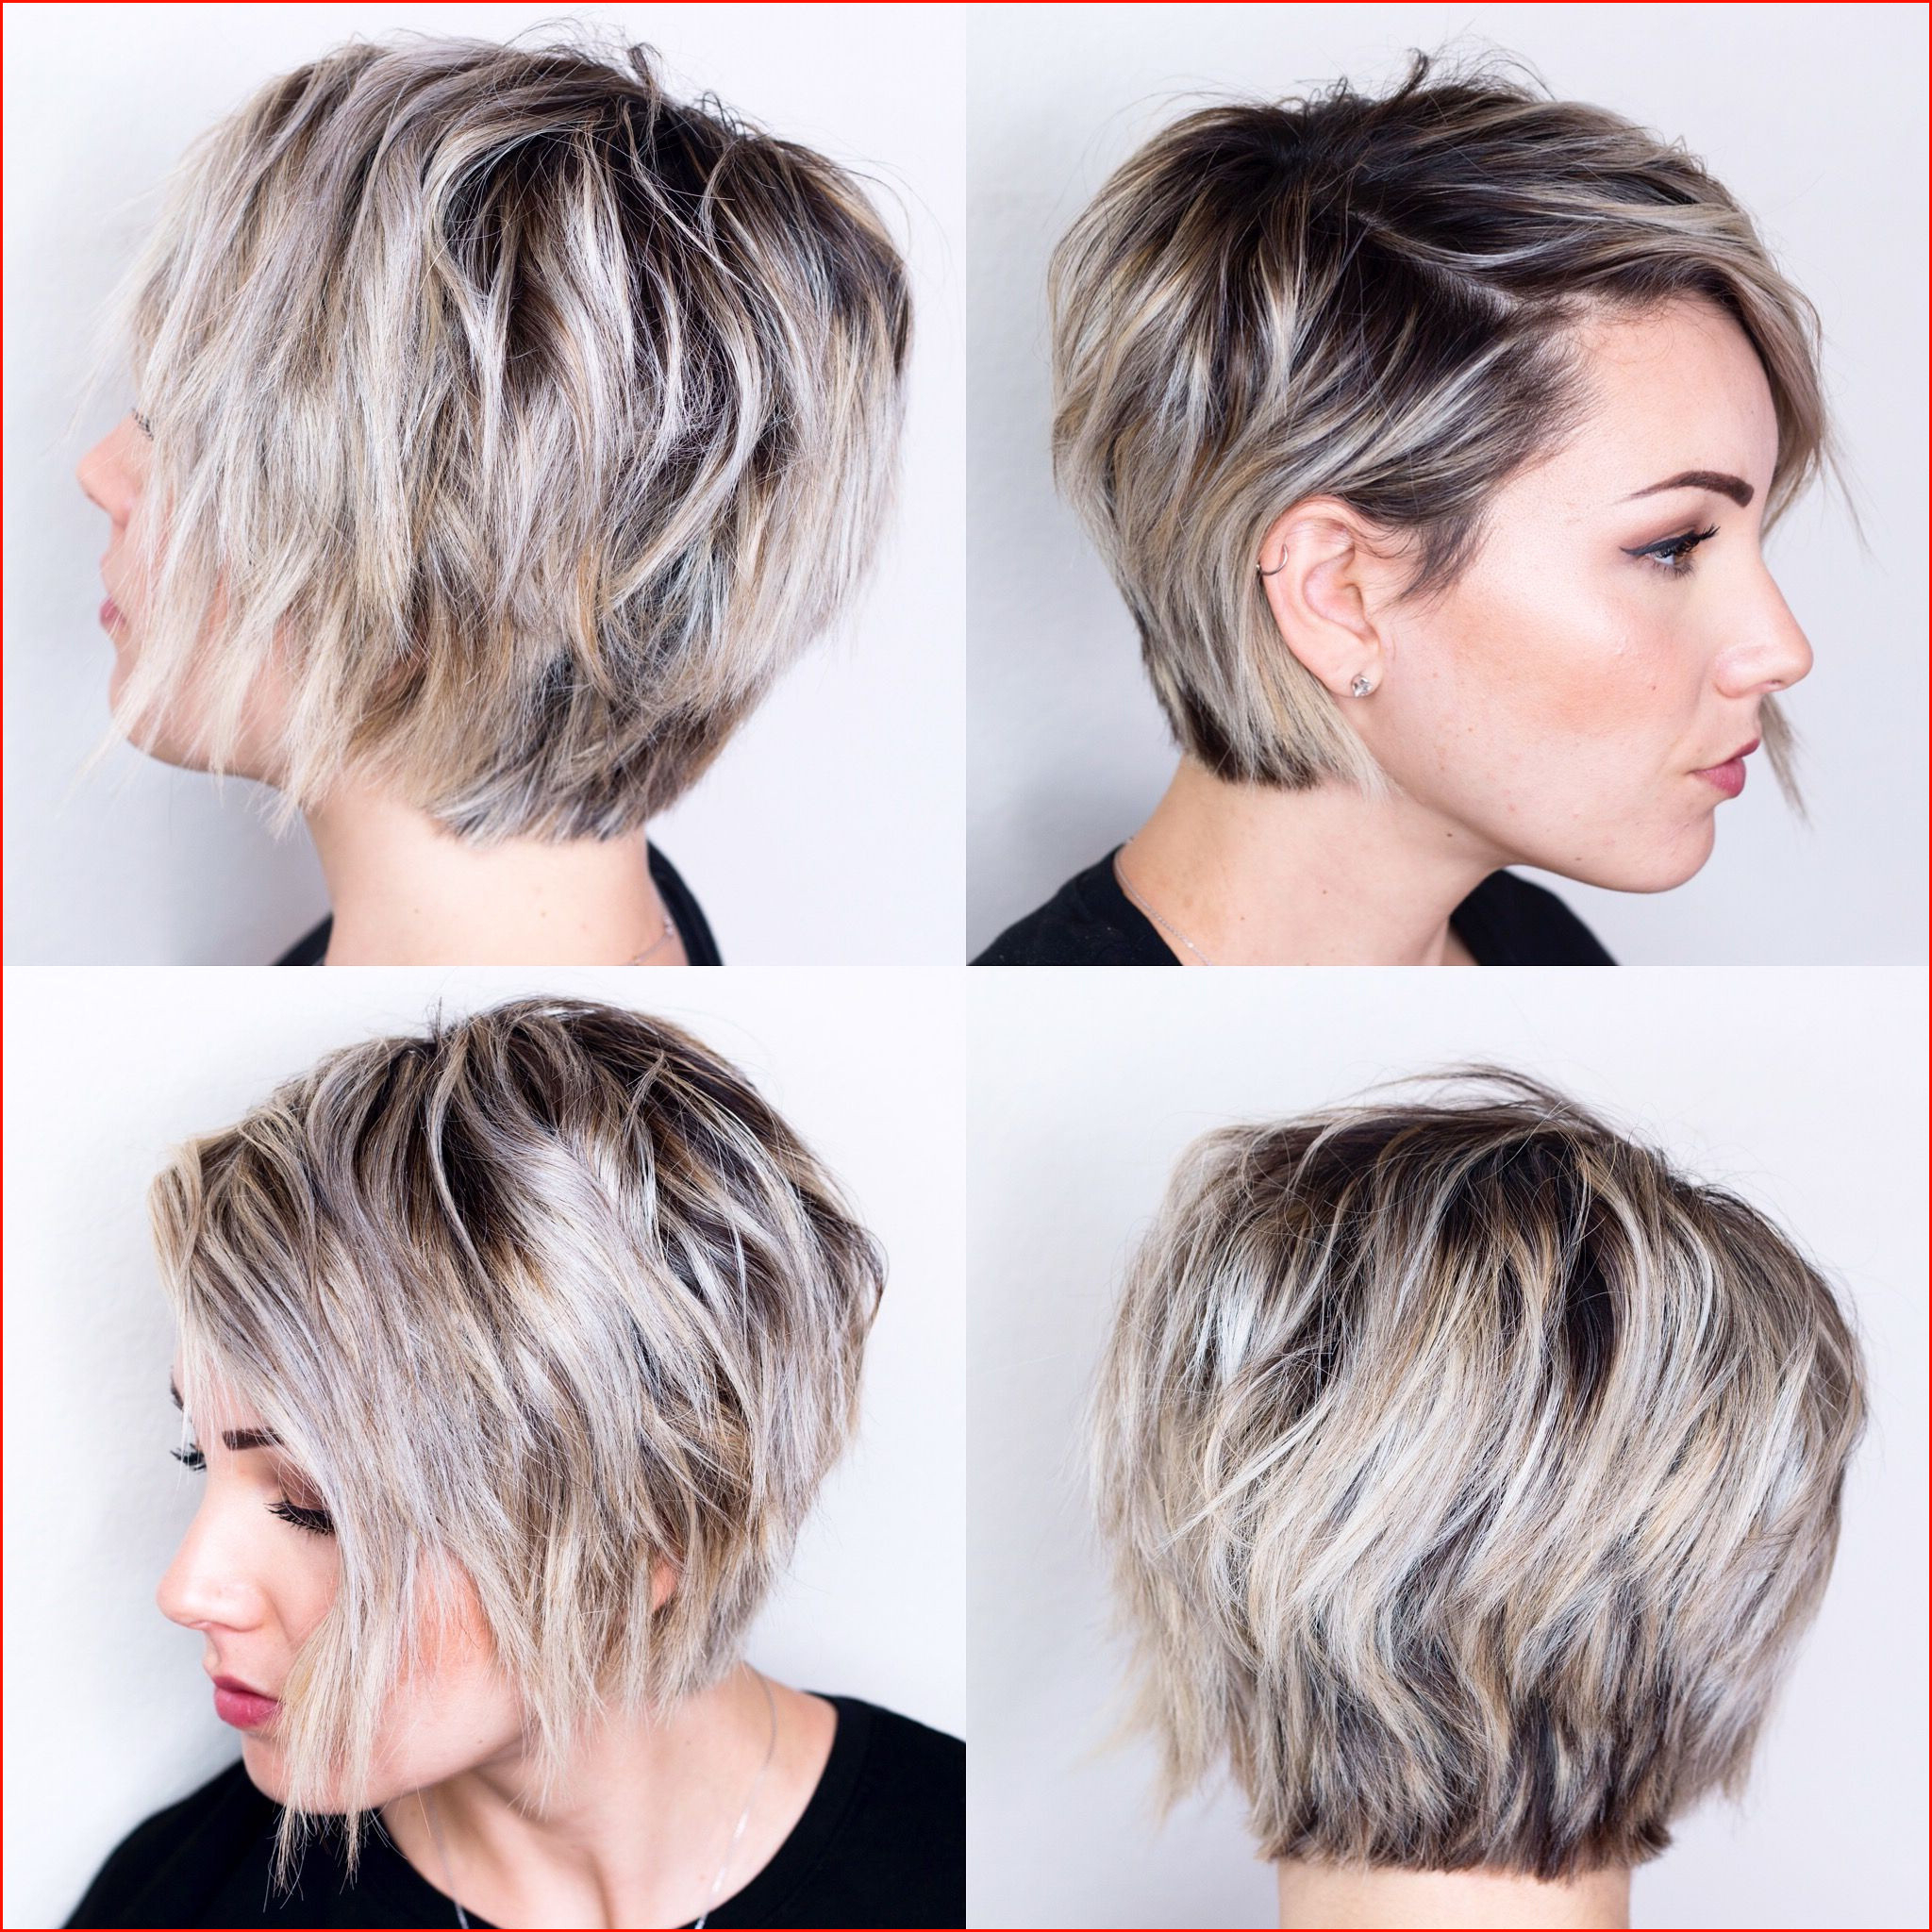 New How To Style Short Bob Hairstyles Gallery Of Bob Throughout Most Up To Date Asymmetrical Bob Hairstyles (View 11 of 20)